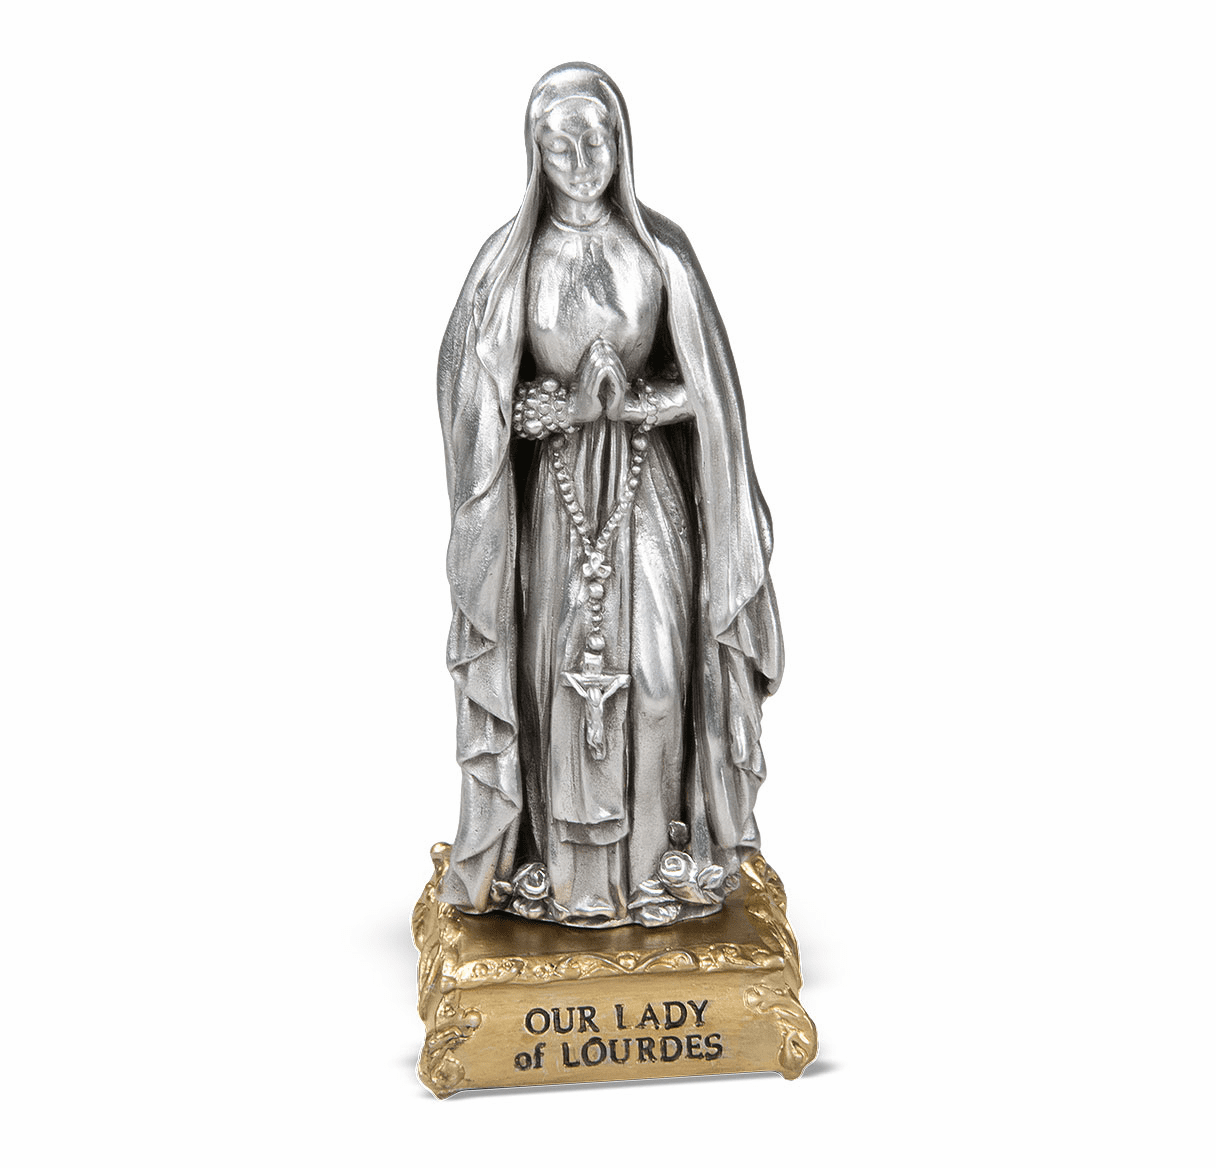 Our Lady of Lourdes Pewter Statue on Gold Tone Base by Hirten